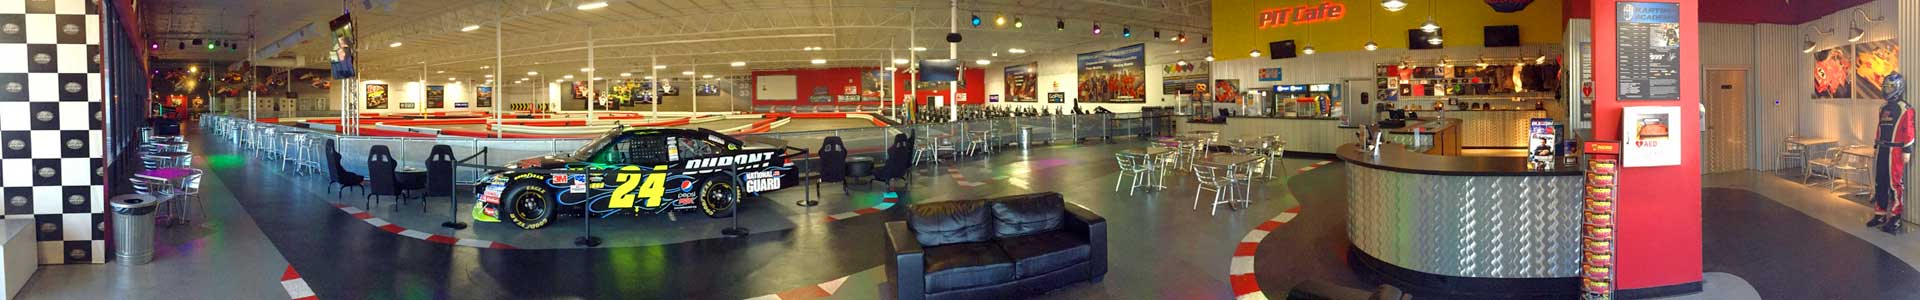 K1 Speed Indoor Go Kart Racing Houston